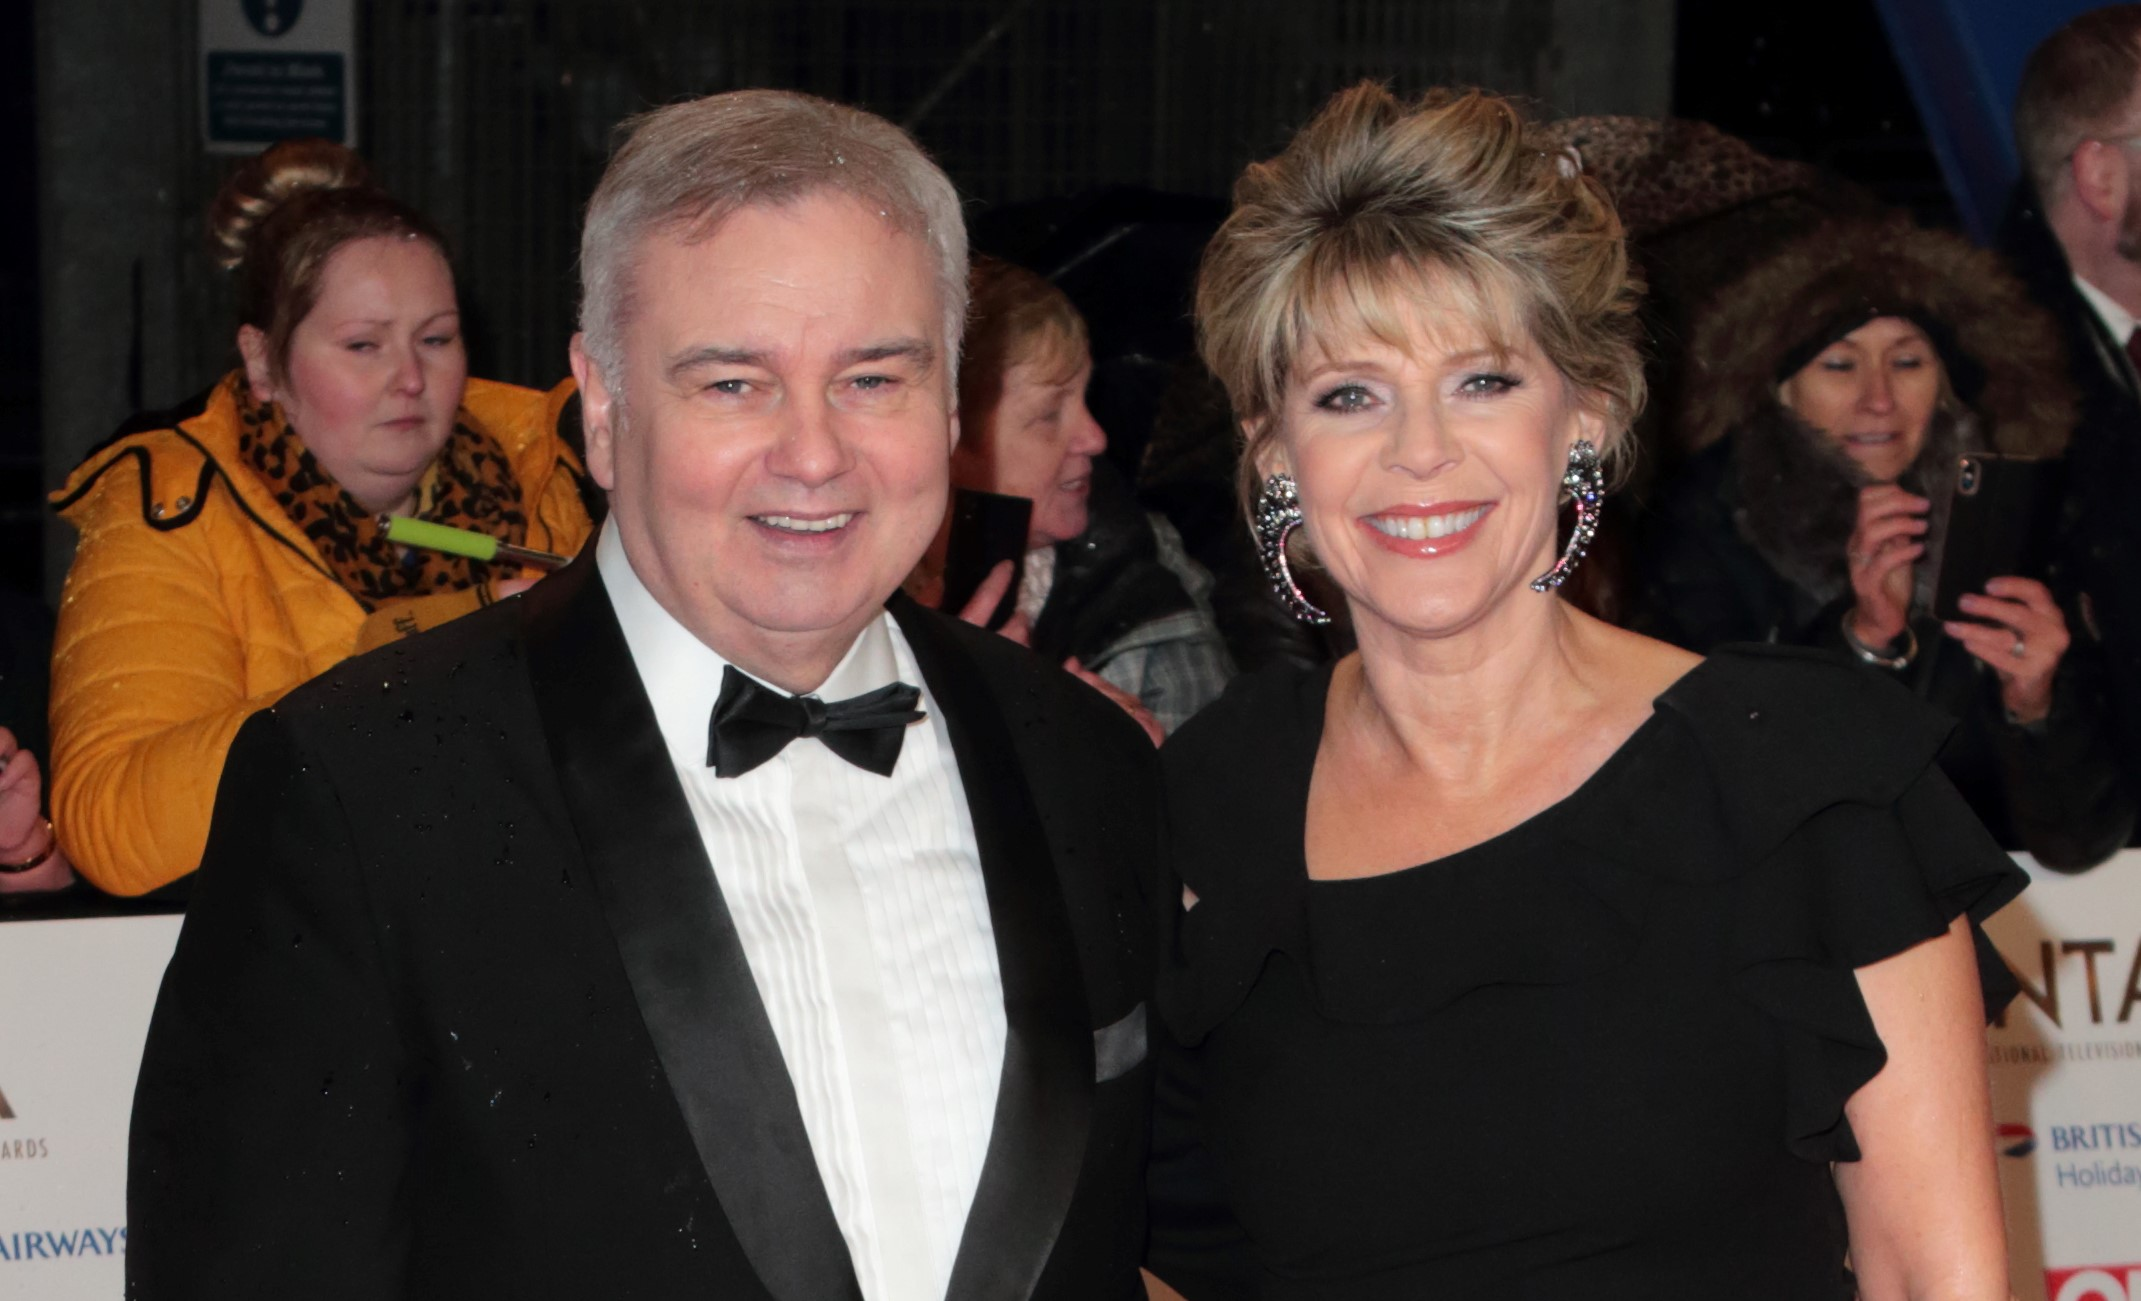 Fans delighted to see Ruth Langsford and Eamonn Holmes 'taking a well-deserved break'